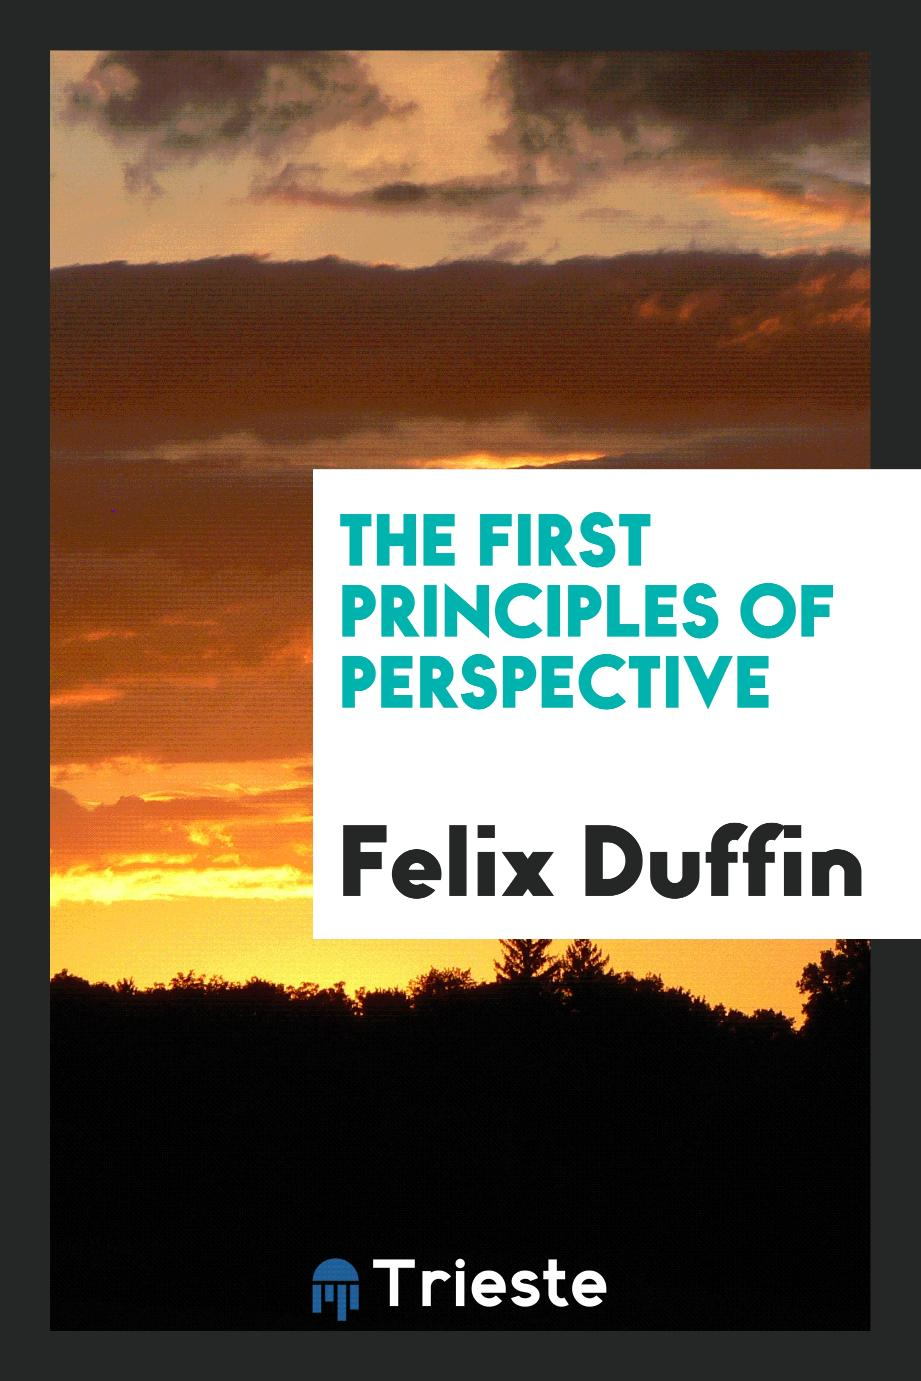 The first principles of perspective